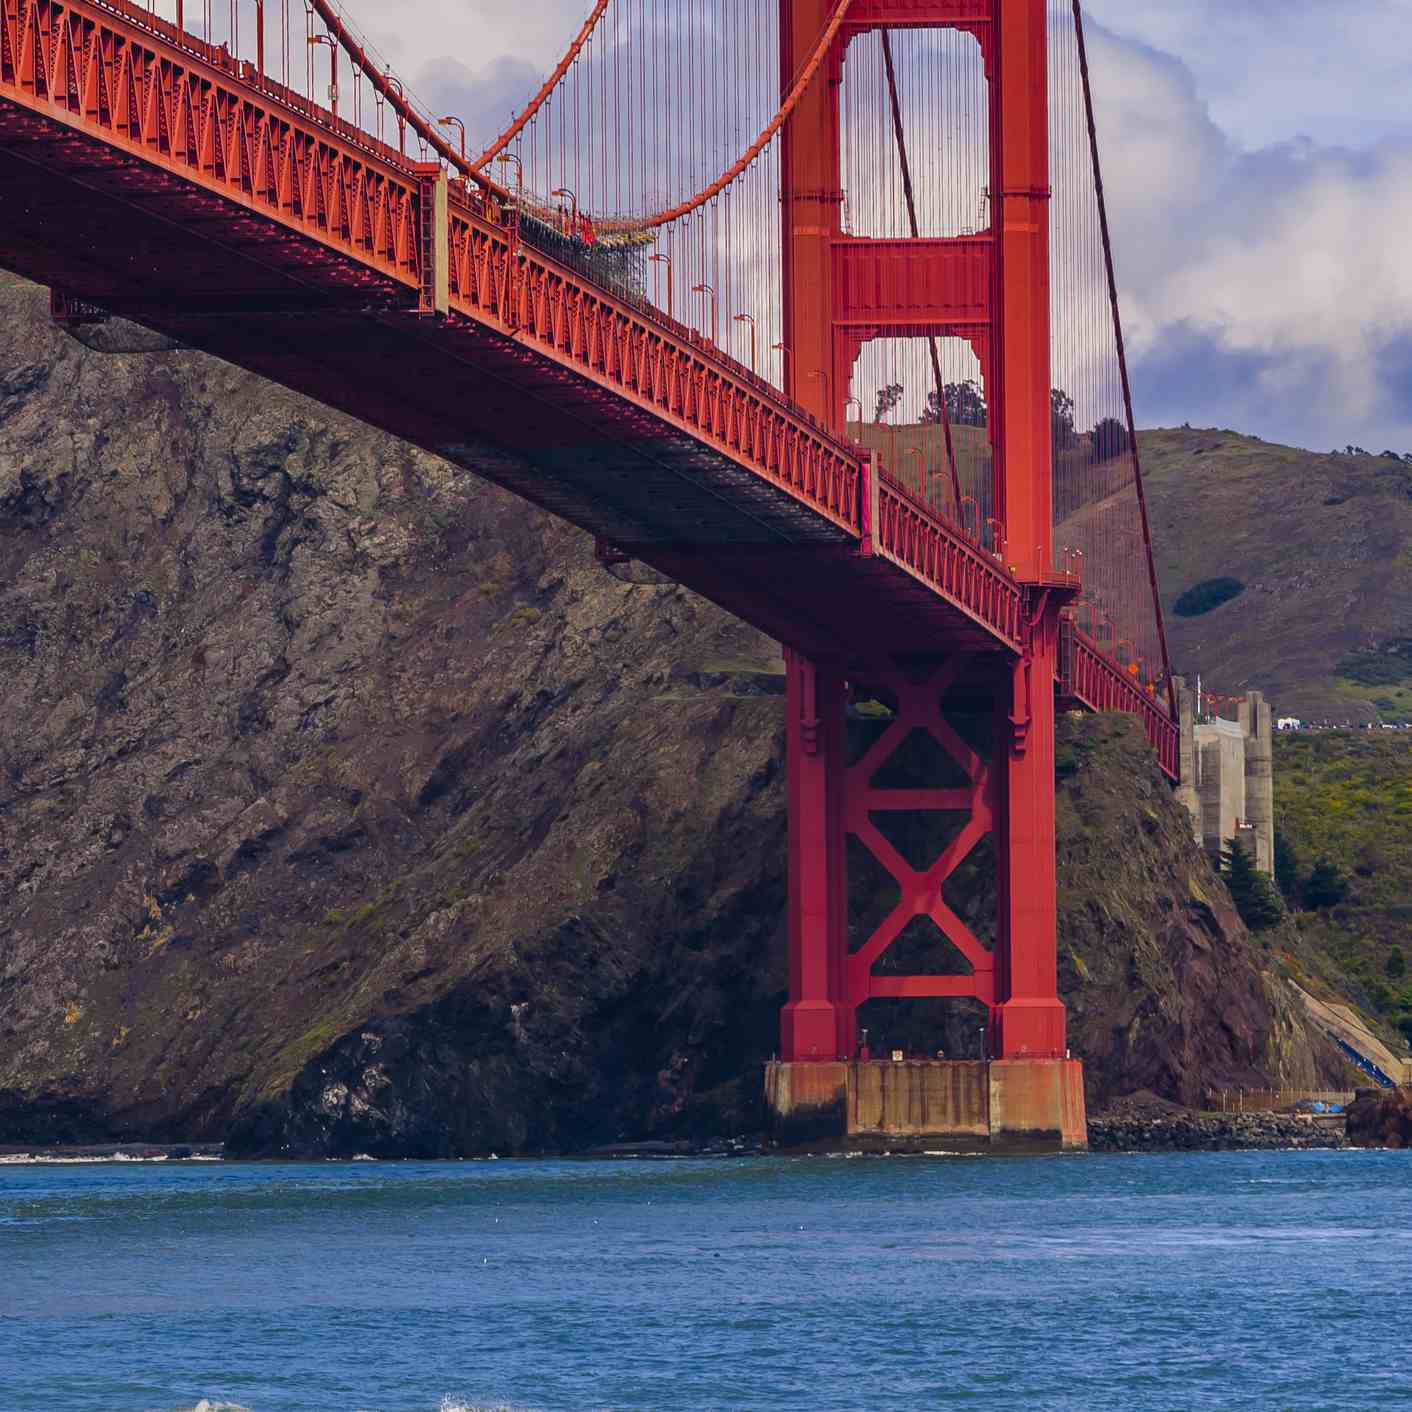 Best San Francisco Beaches for Surfing